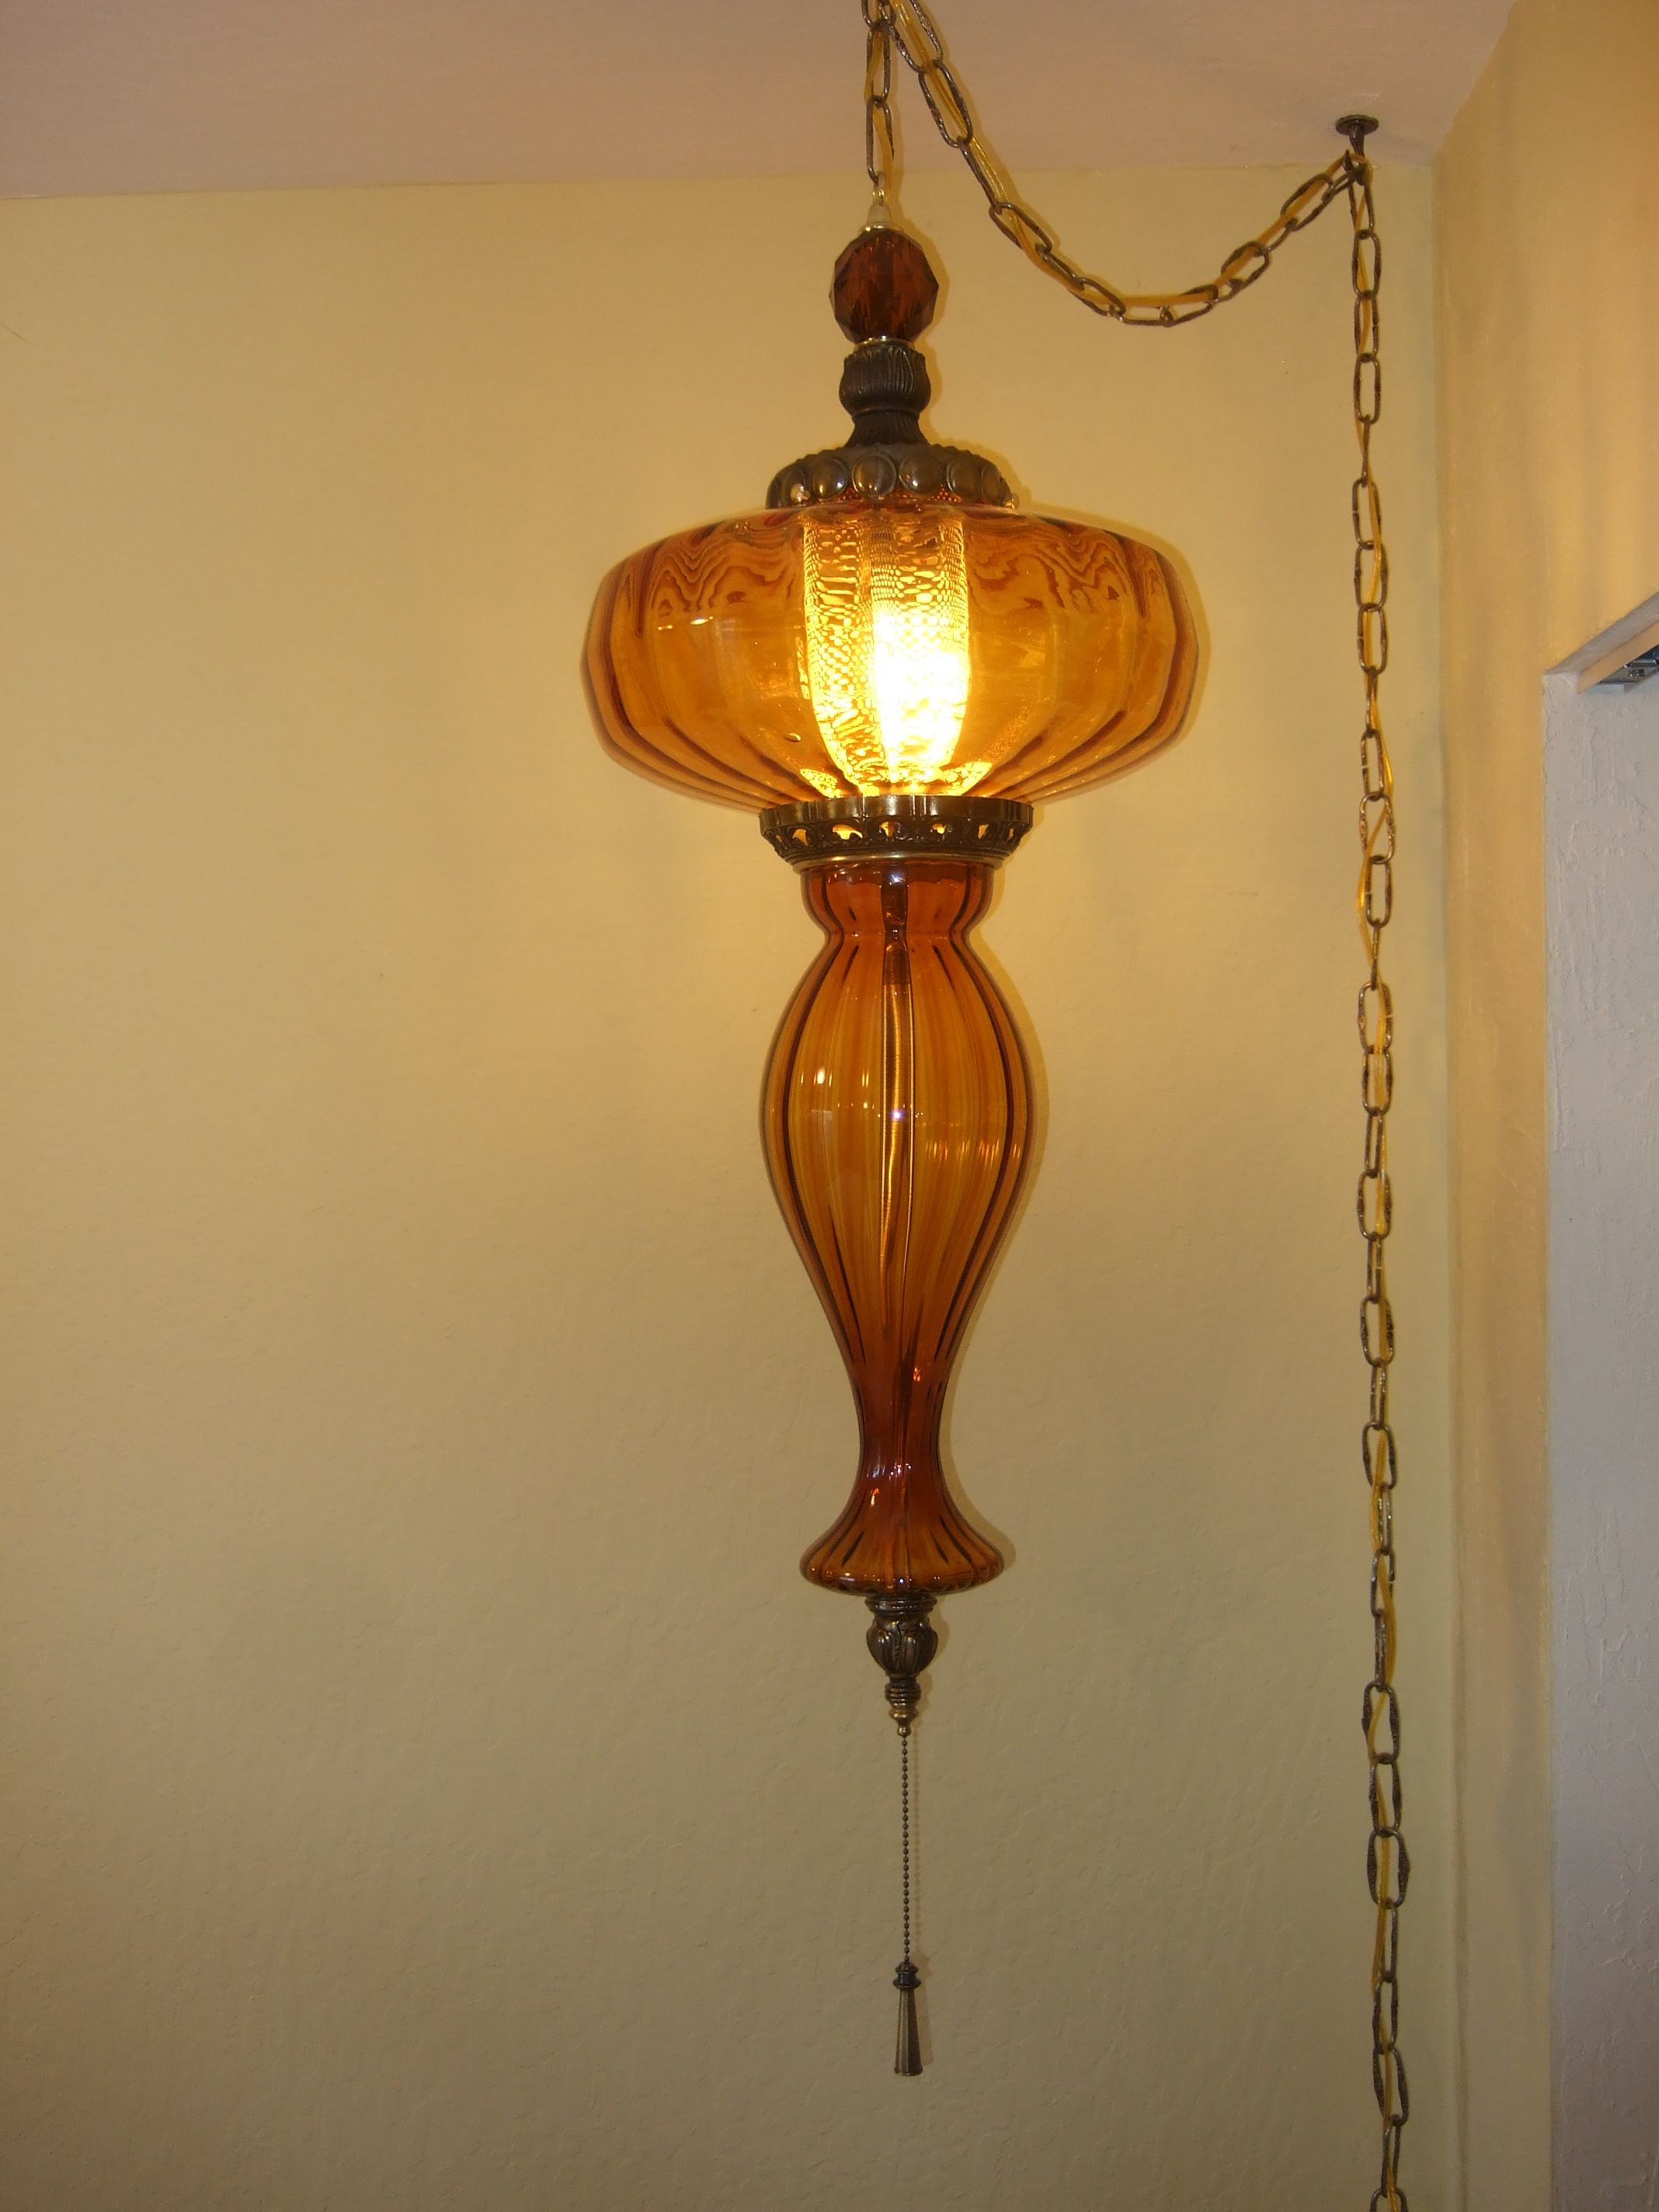 This Is An Amber Swag Lamp I Designed From Repurposing Parts From Vintage Table  Lamps.